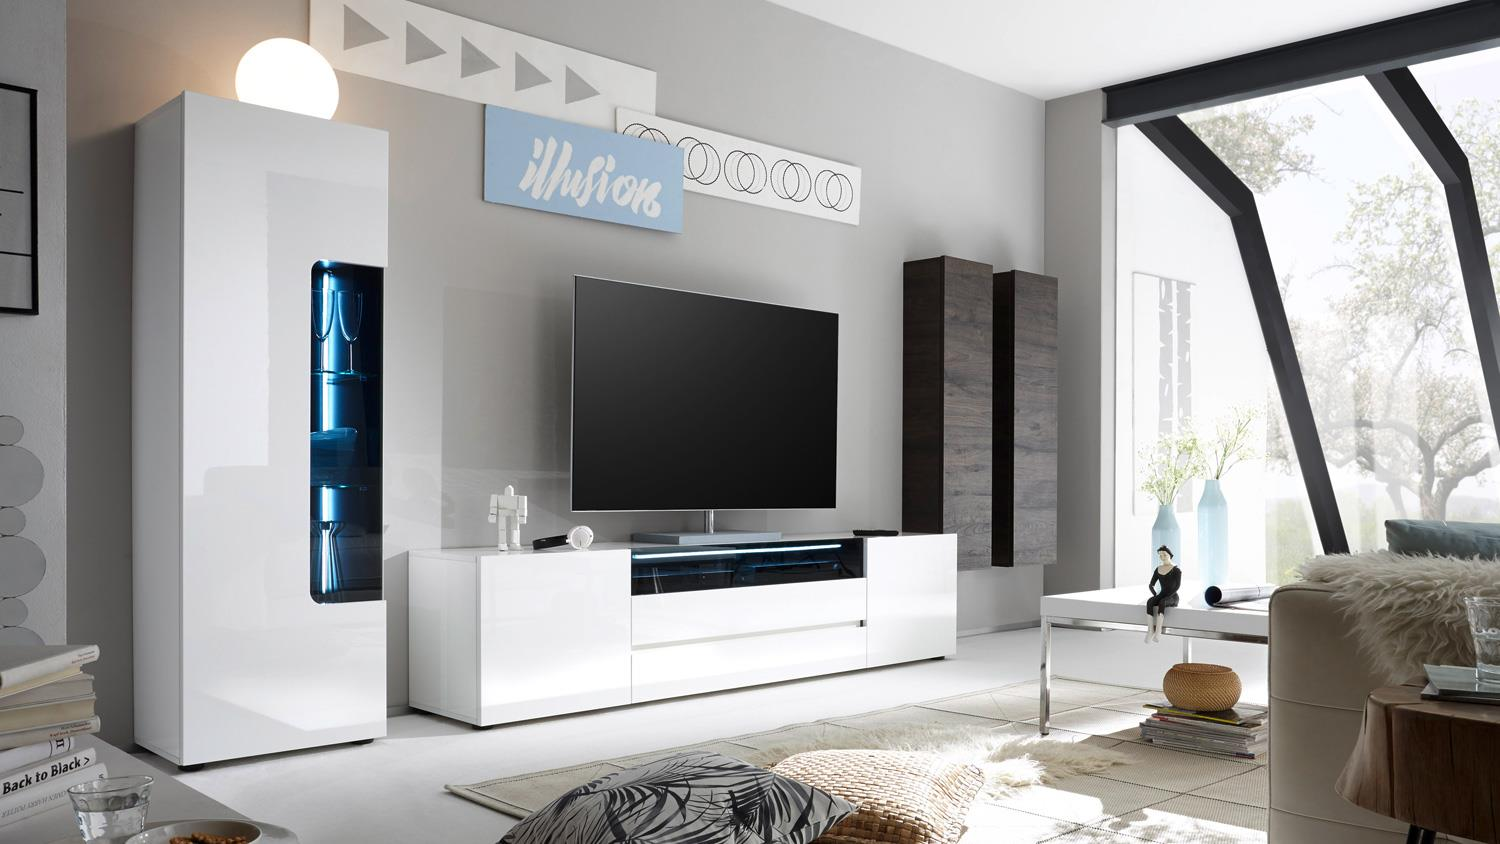 bilder von wohnzimmer mit balken kleinen. Black Bedroom Furniture Sets. Home Design Ideas